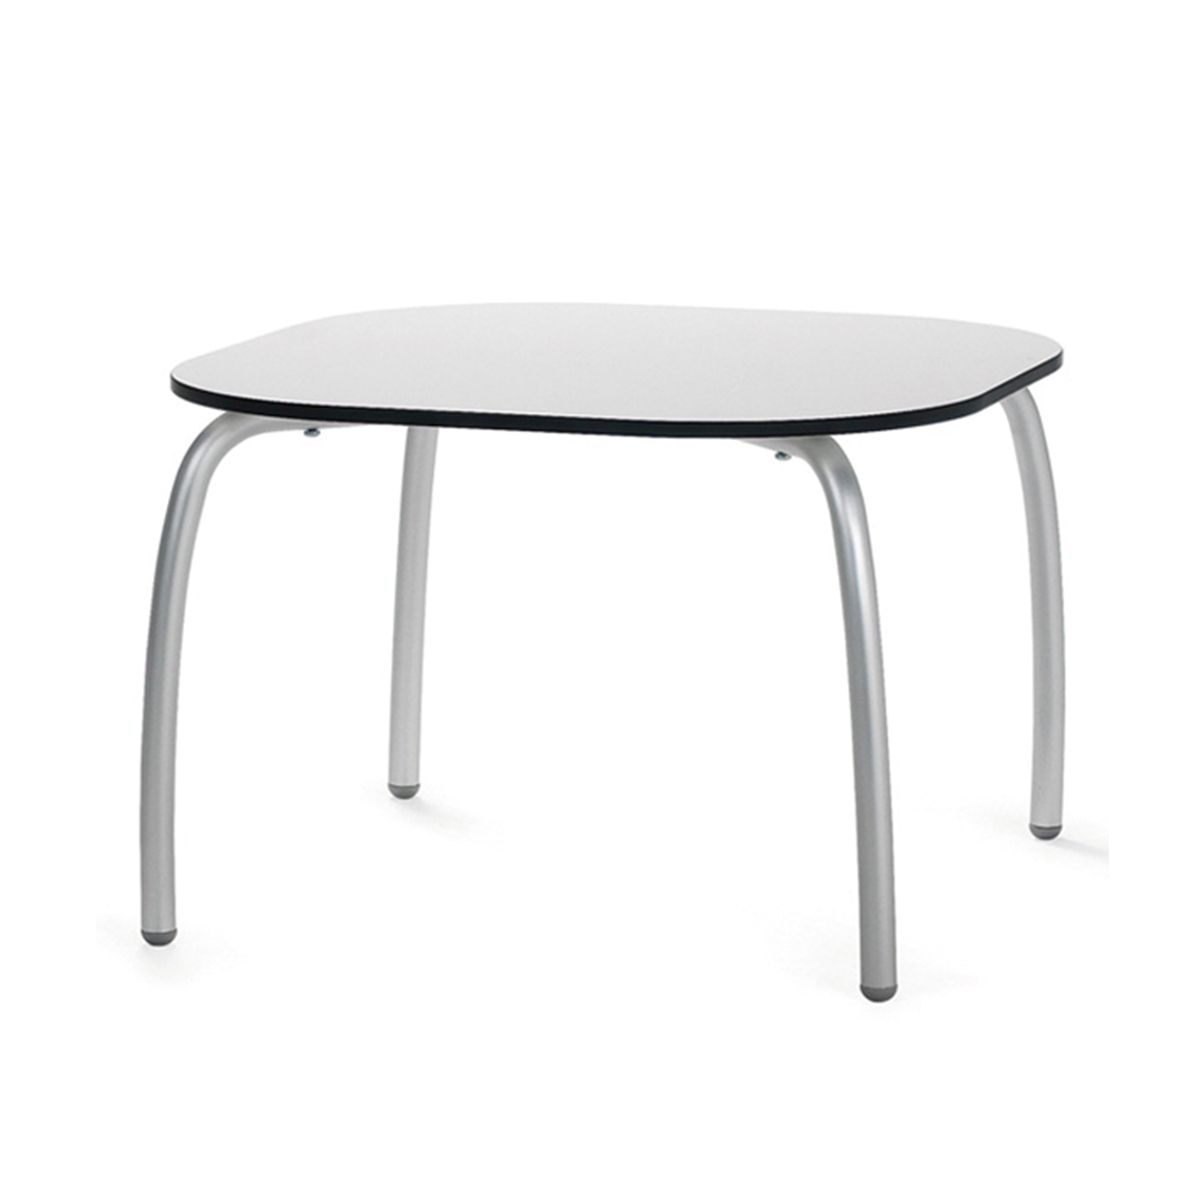 table basse nardi loto relax 60 cm tables basses design